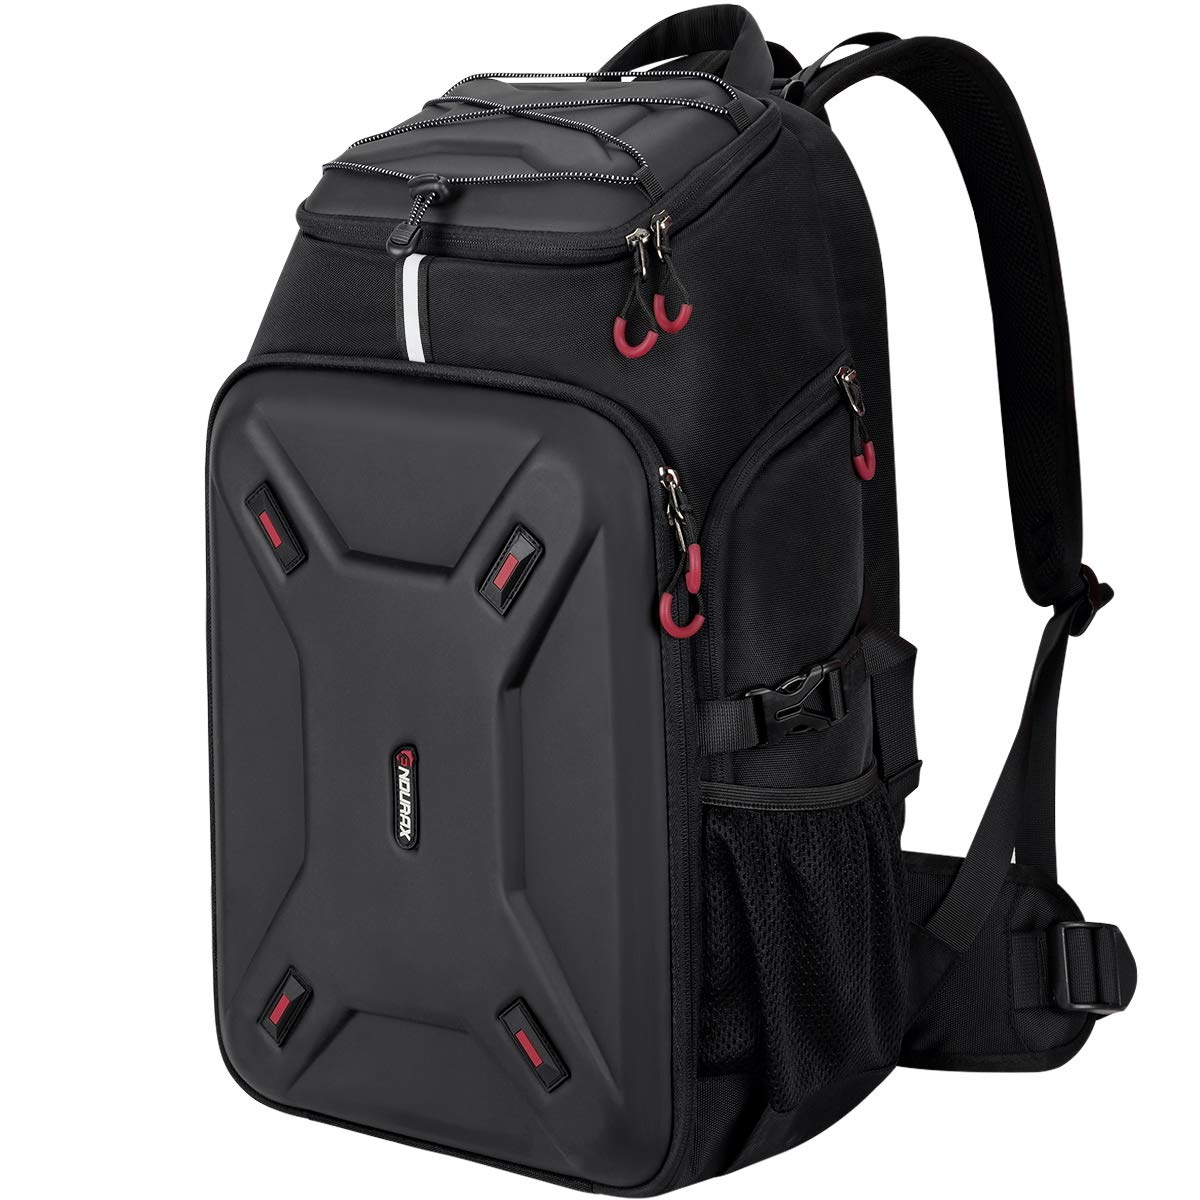 3. hard dslr camera cases Review – Endurax ShellX P01 Extra Large Camera  Backpack Hardshell Protection for DSLR Camera Gear or DJI Phantom 3 4 4a44adcd7863d